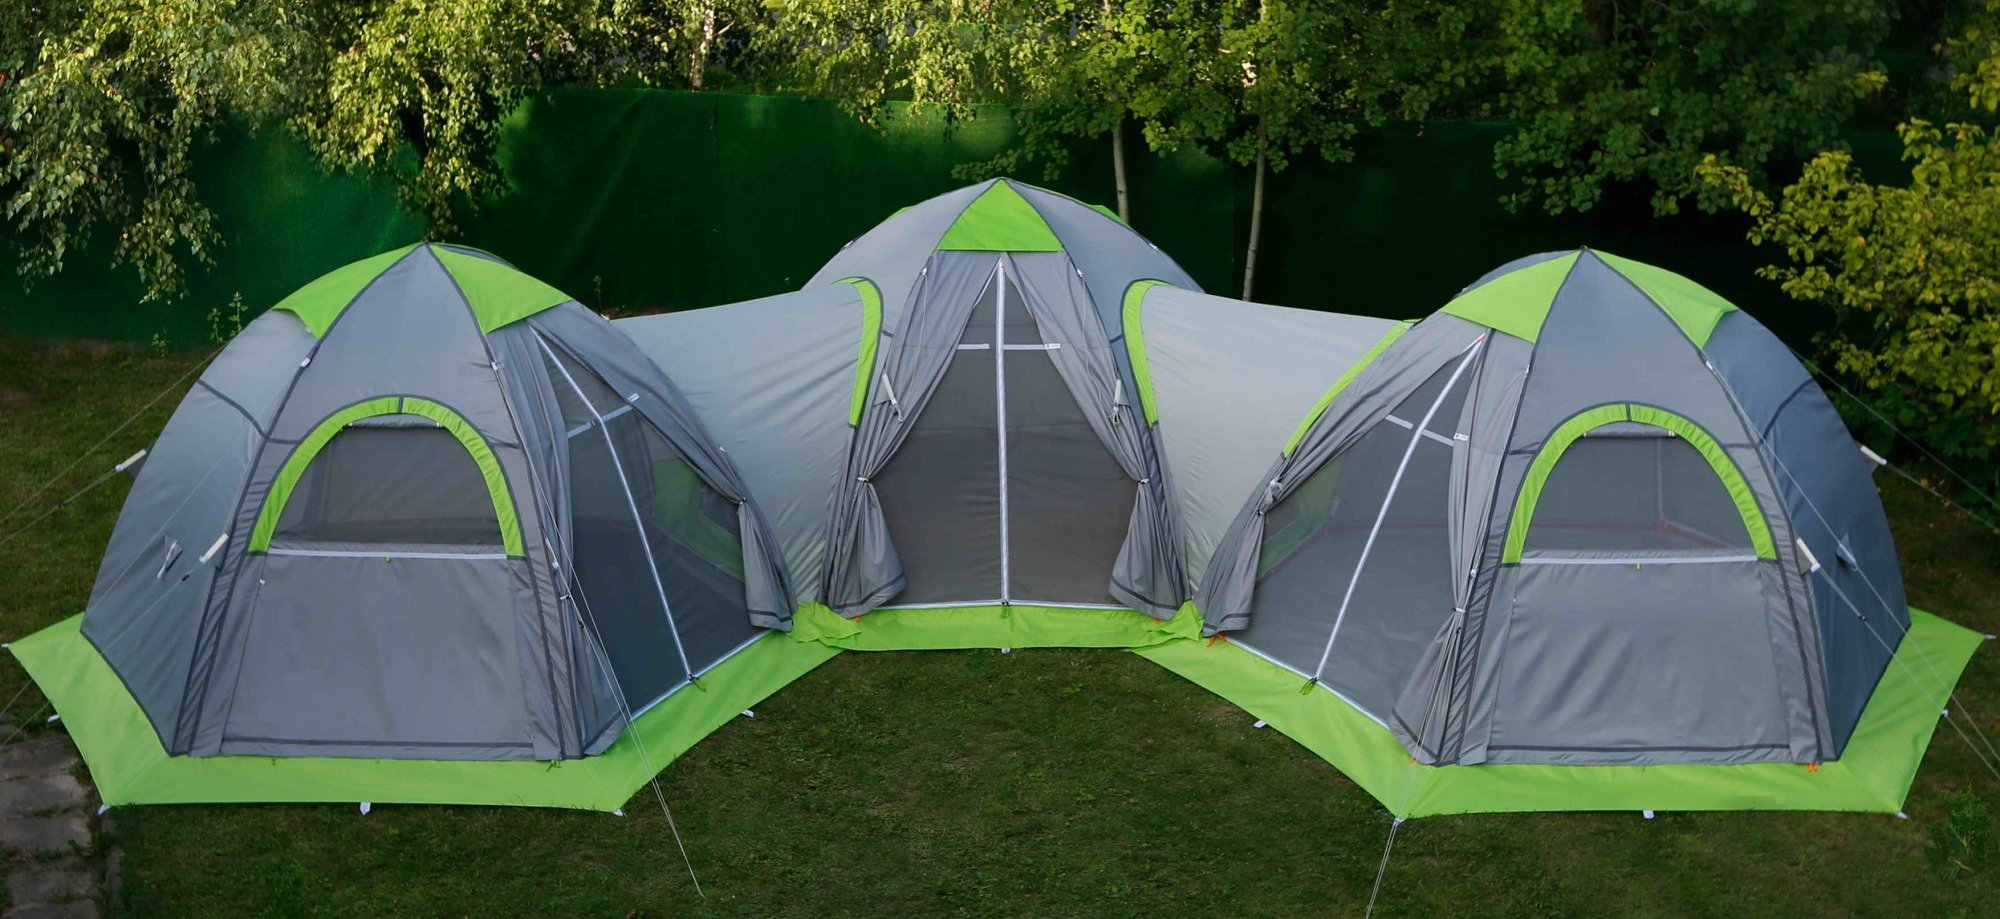 10 Person Tents for Camping